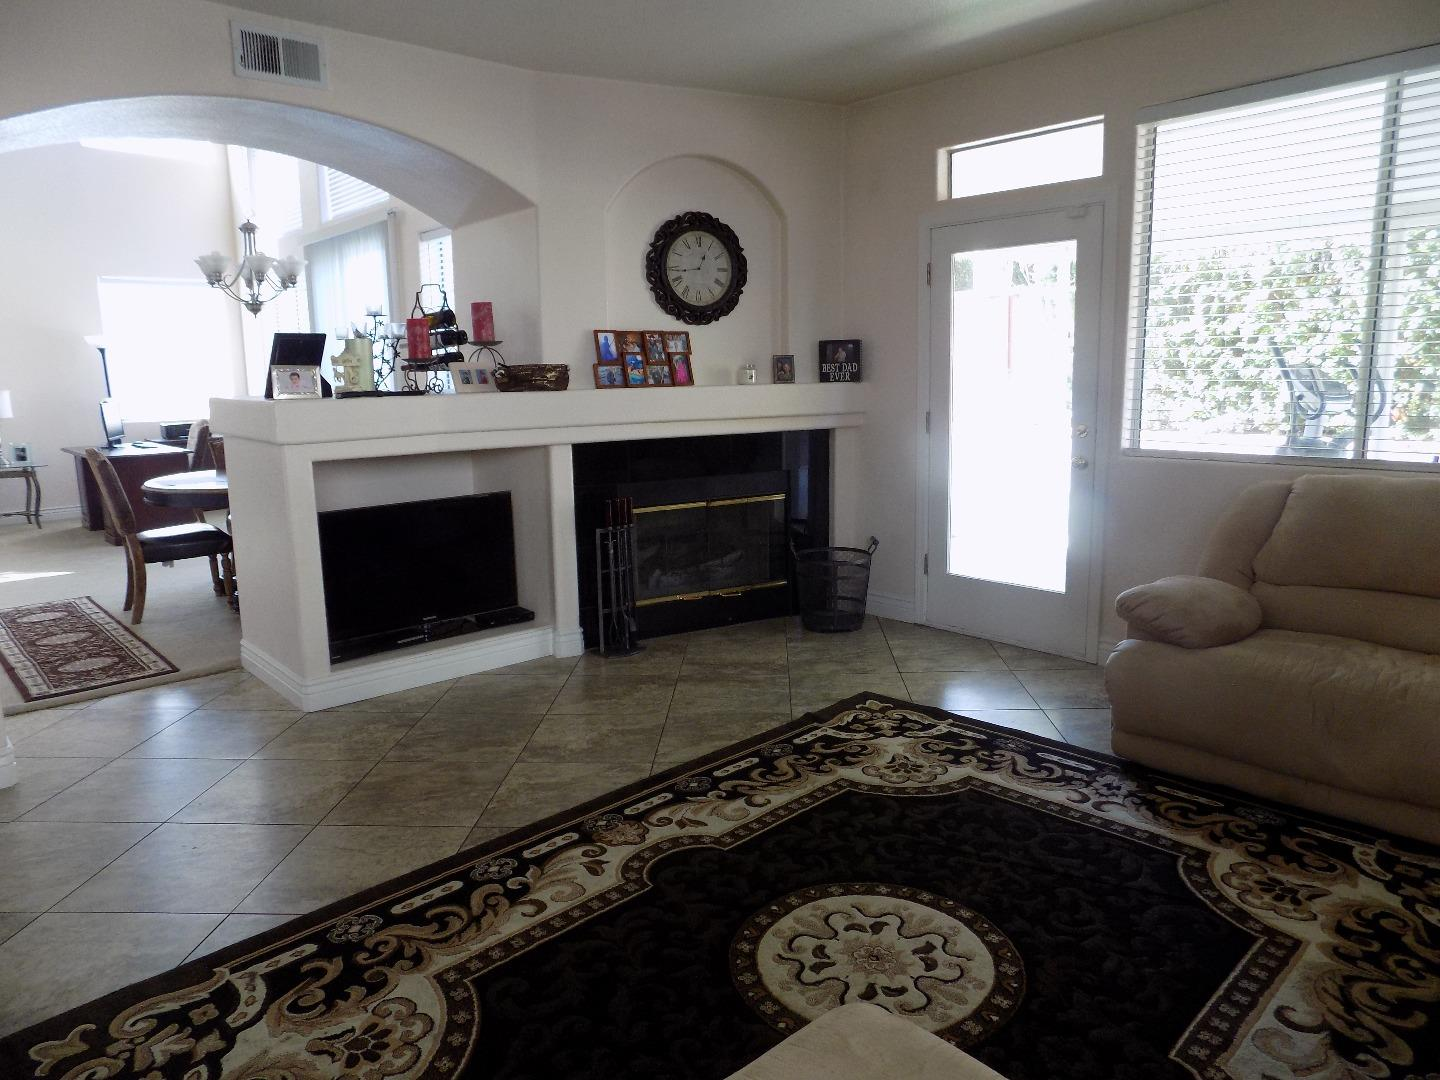 Additional photo for property listing at 1836 London Way  Salinas, California 93906 United States